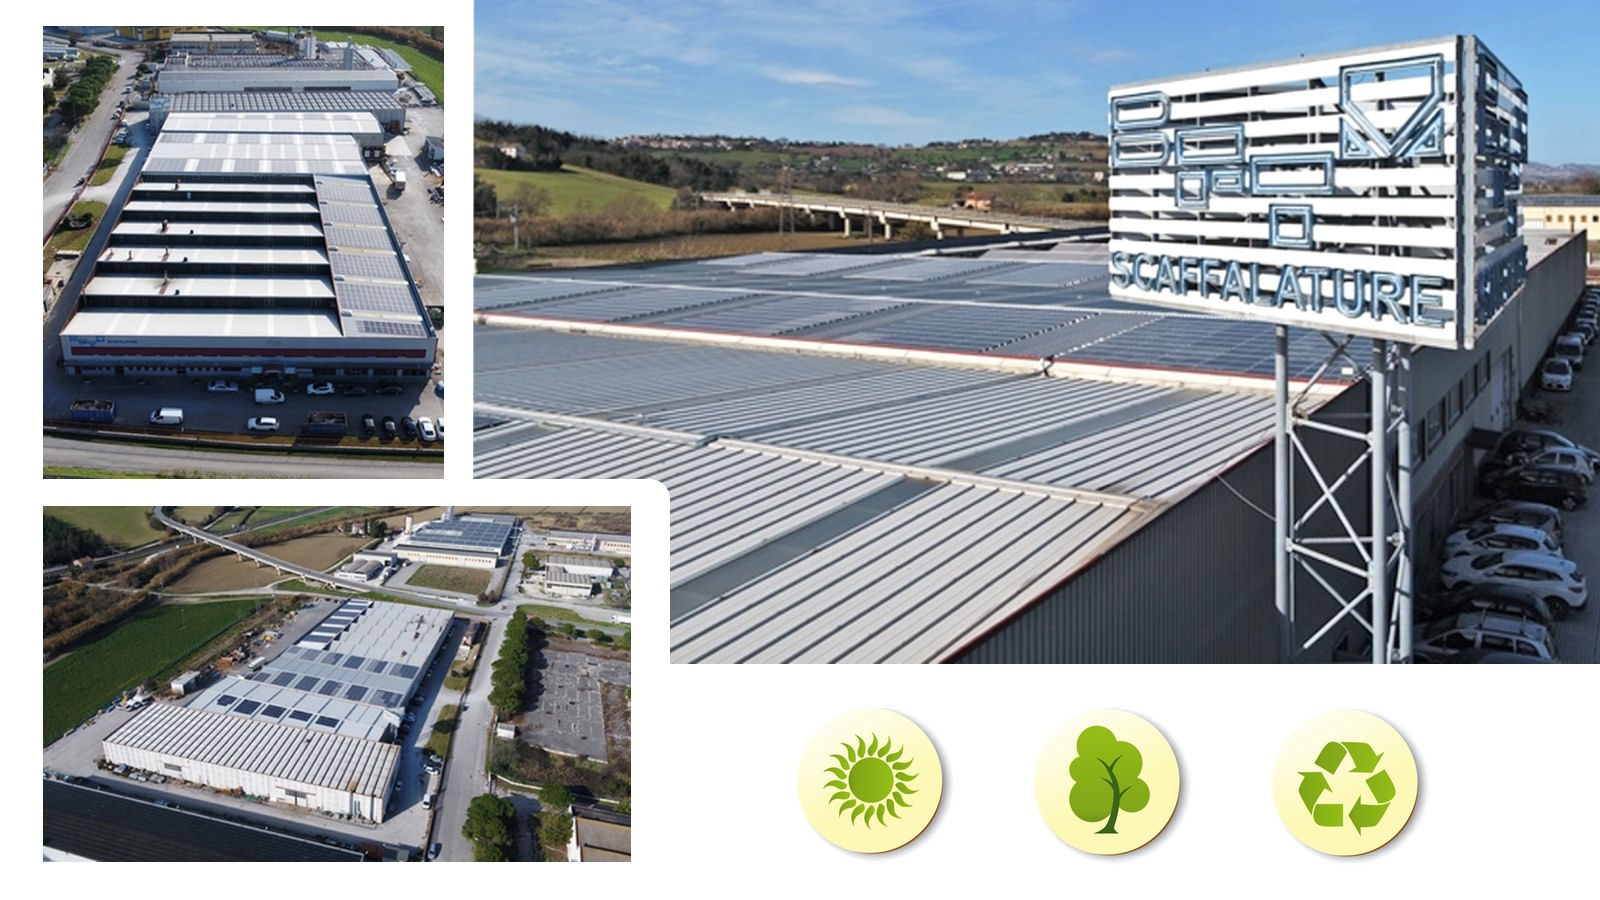 BFTM more green with the installation of the photovoltaic system